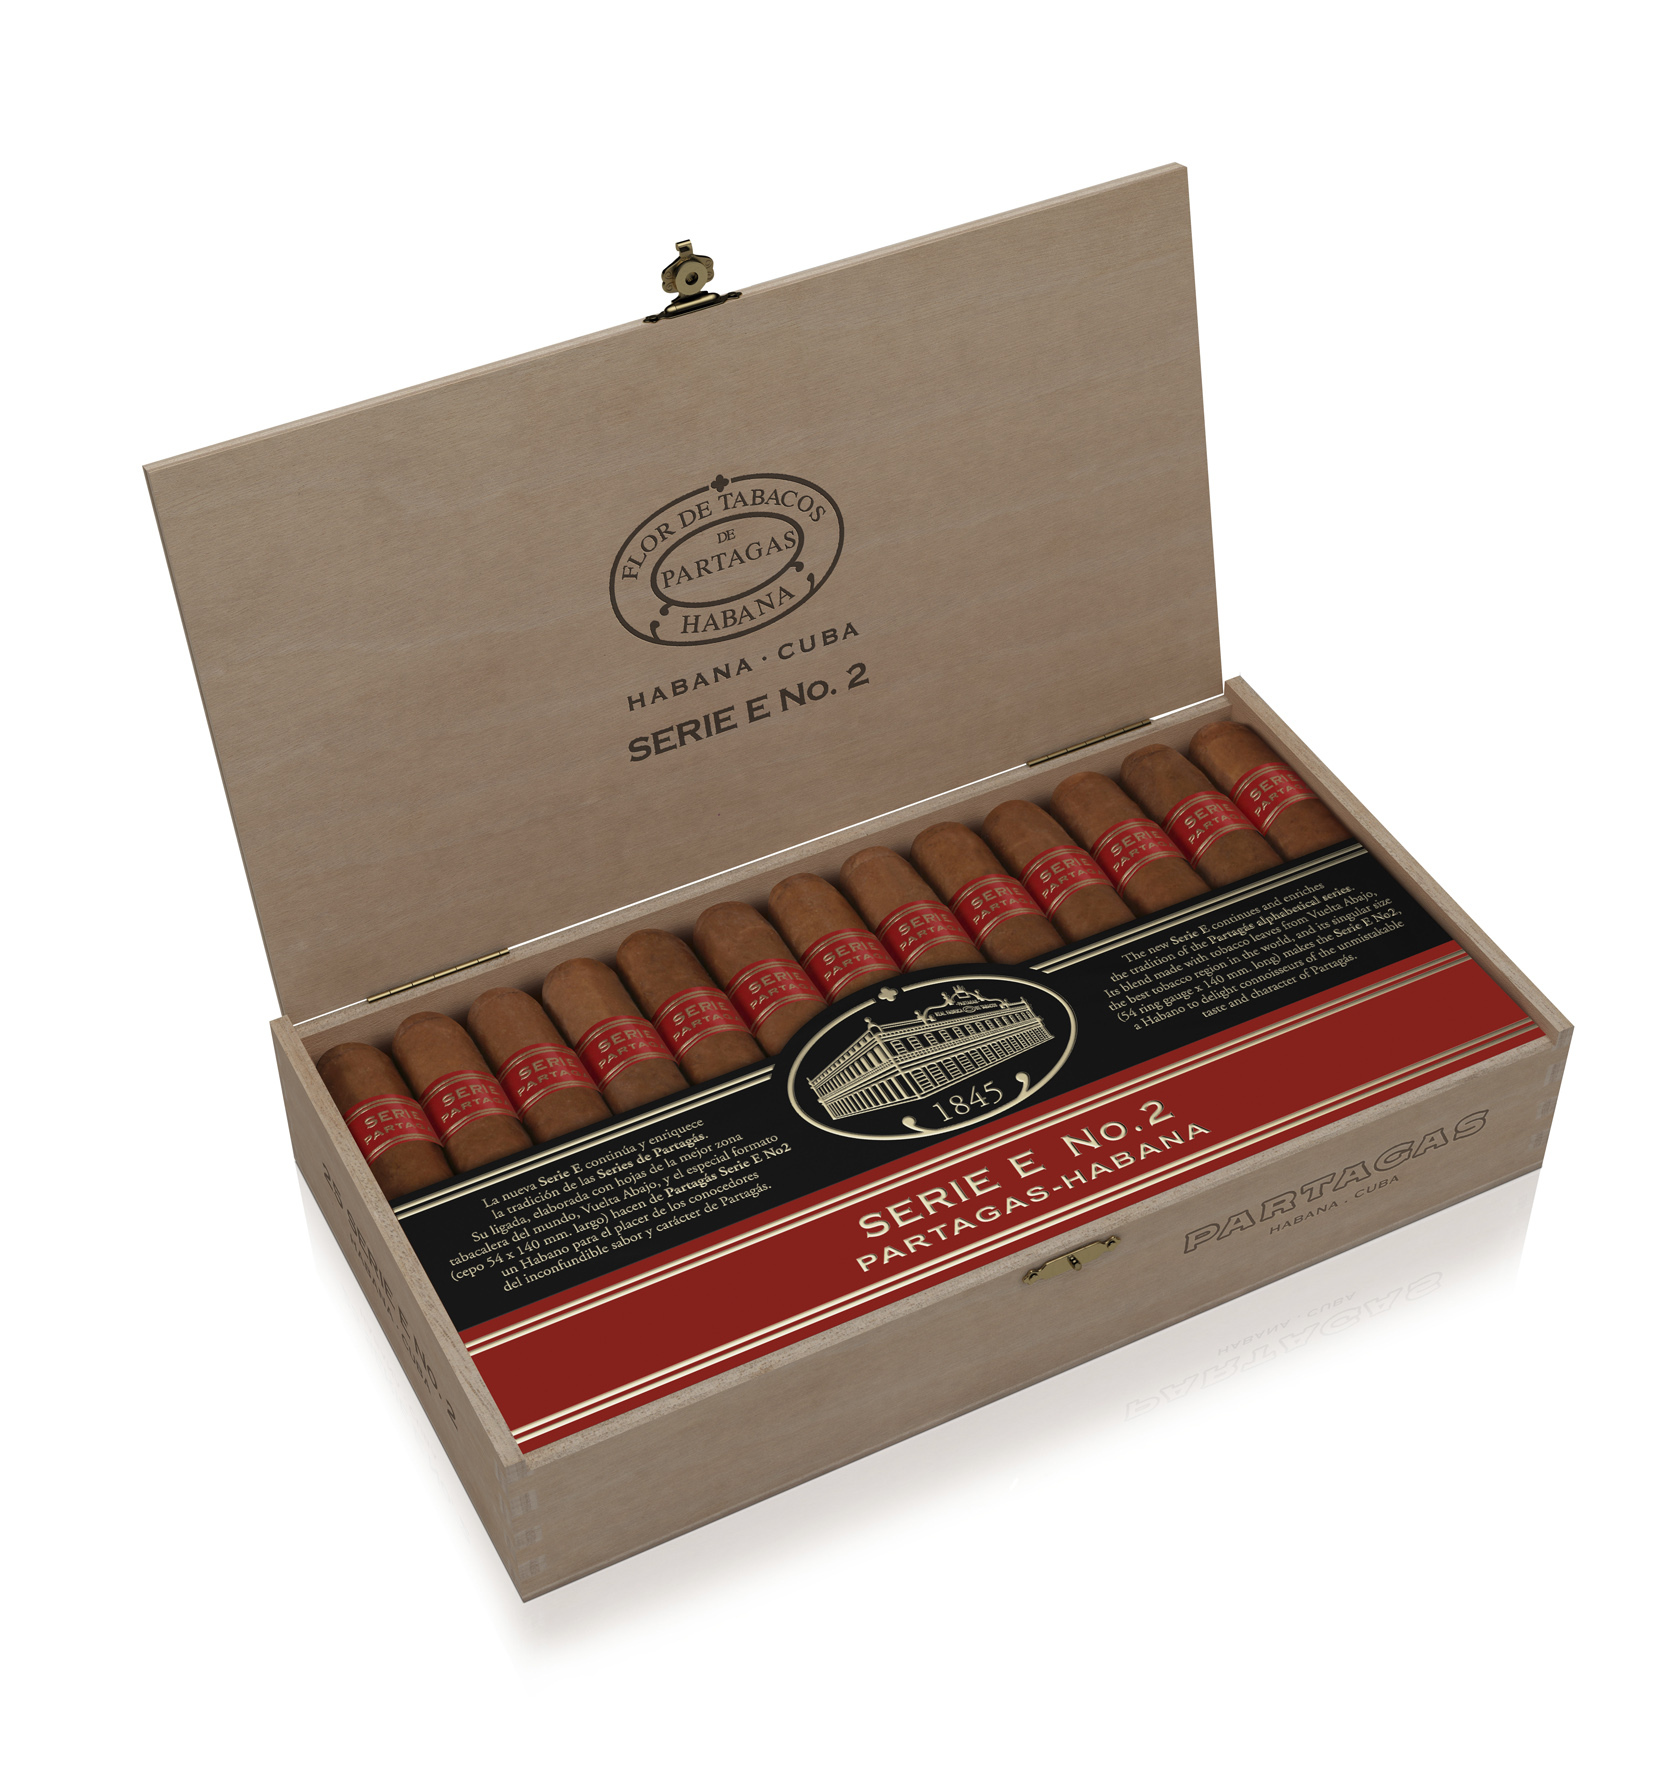 Cigar News: Habanos S.A has a new Partagas Vitola